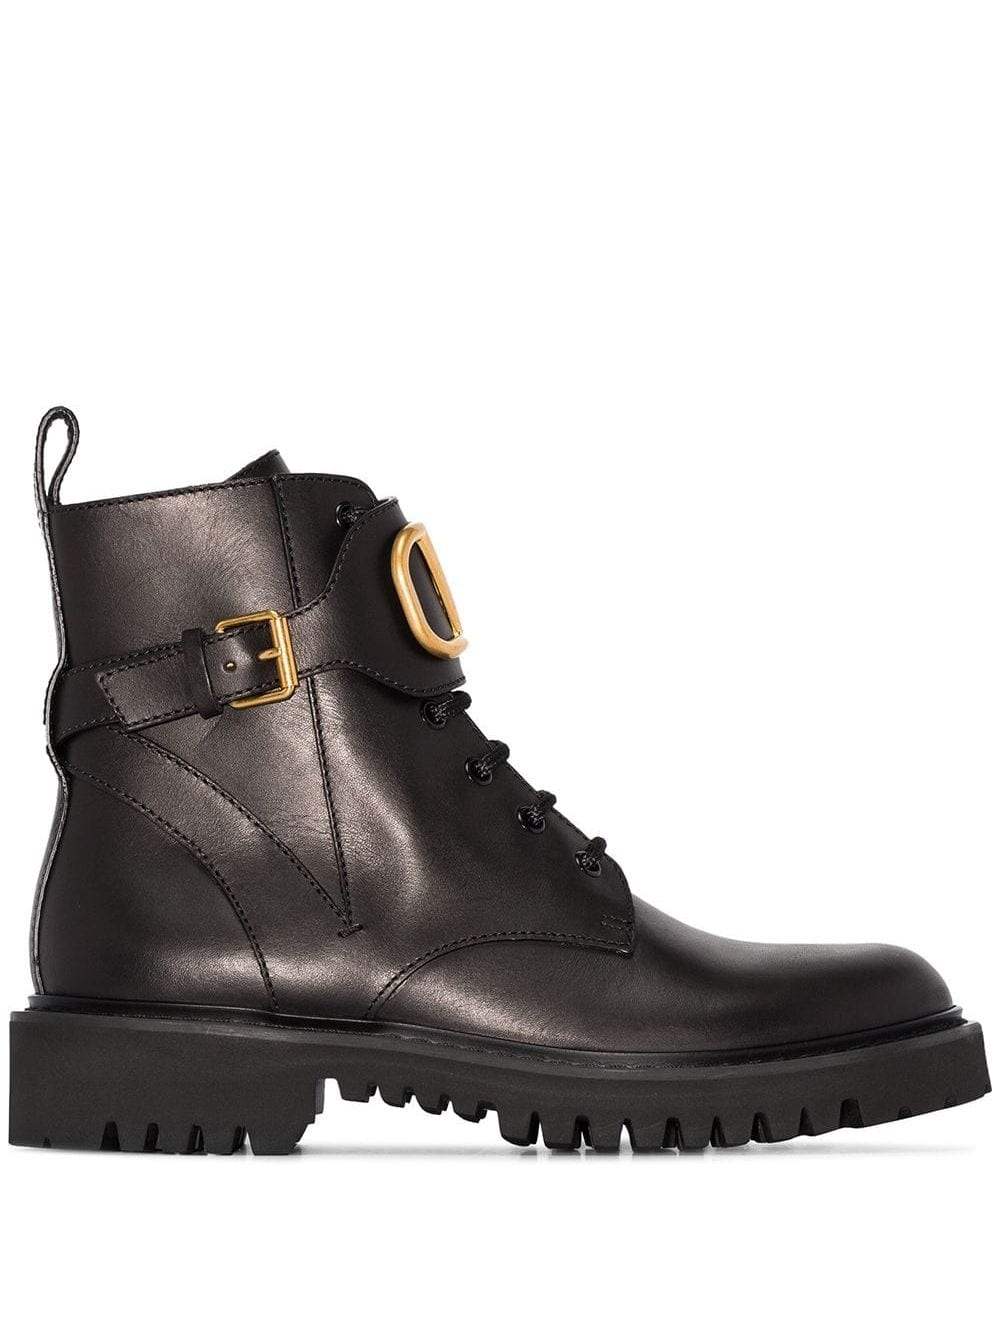 Vlogo Leather Combat Boots